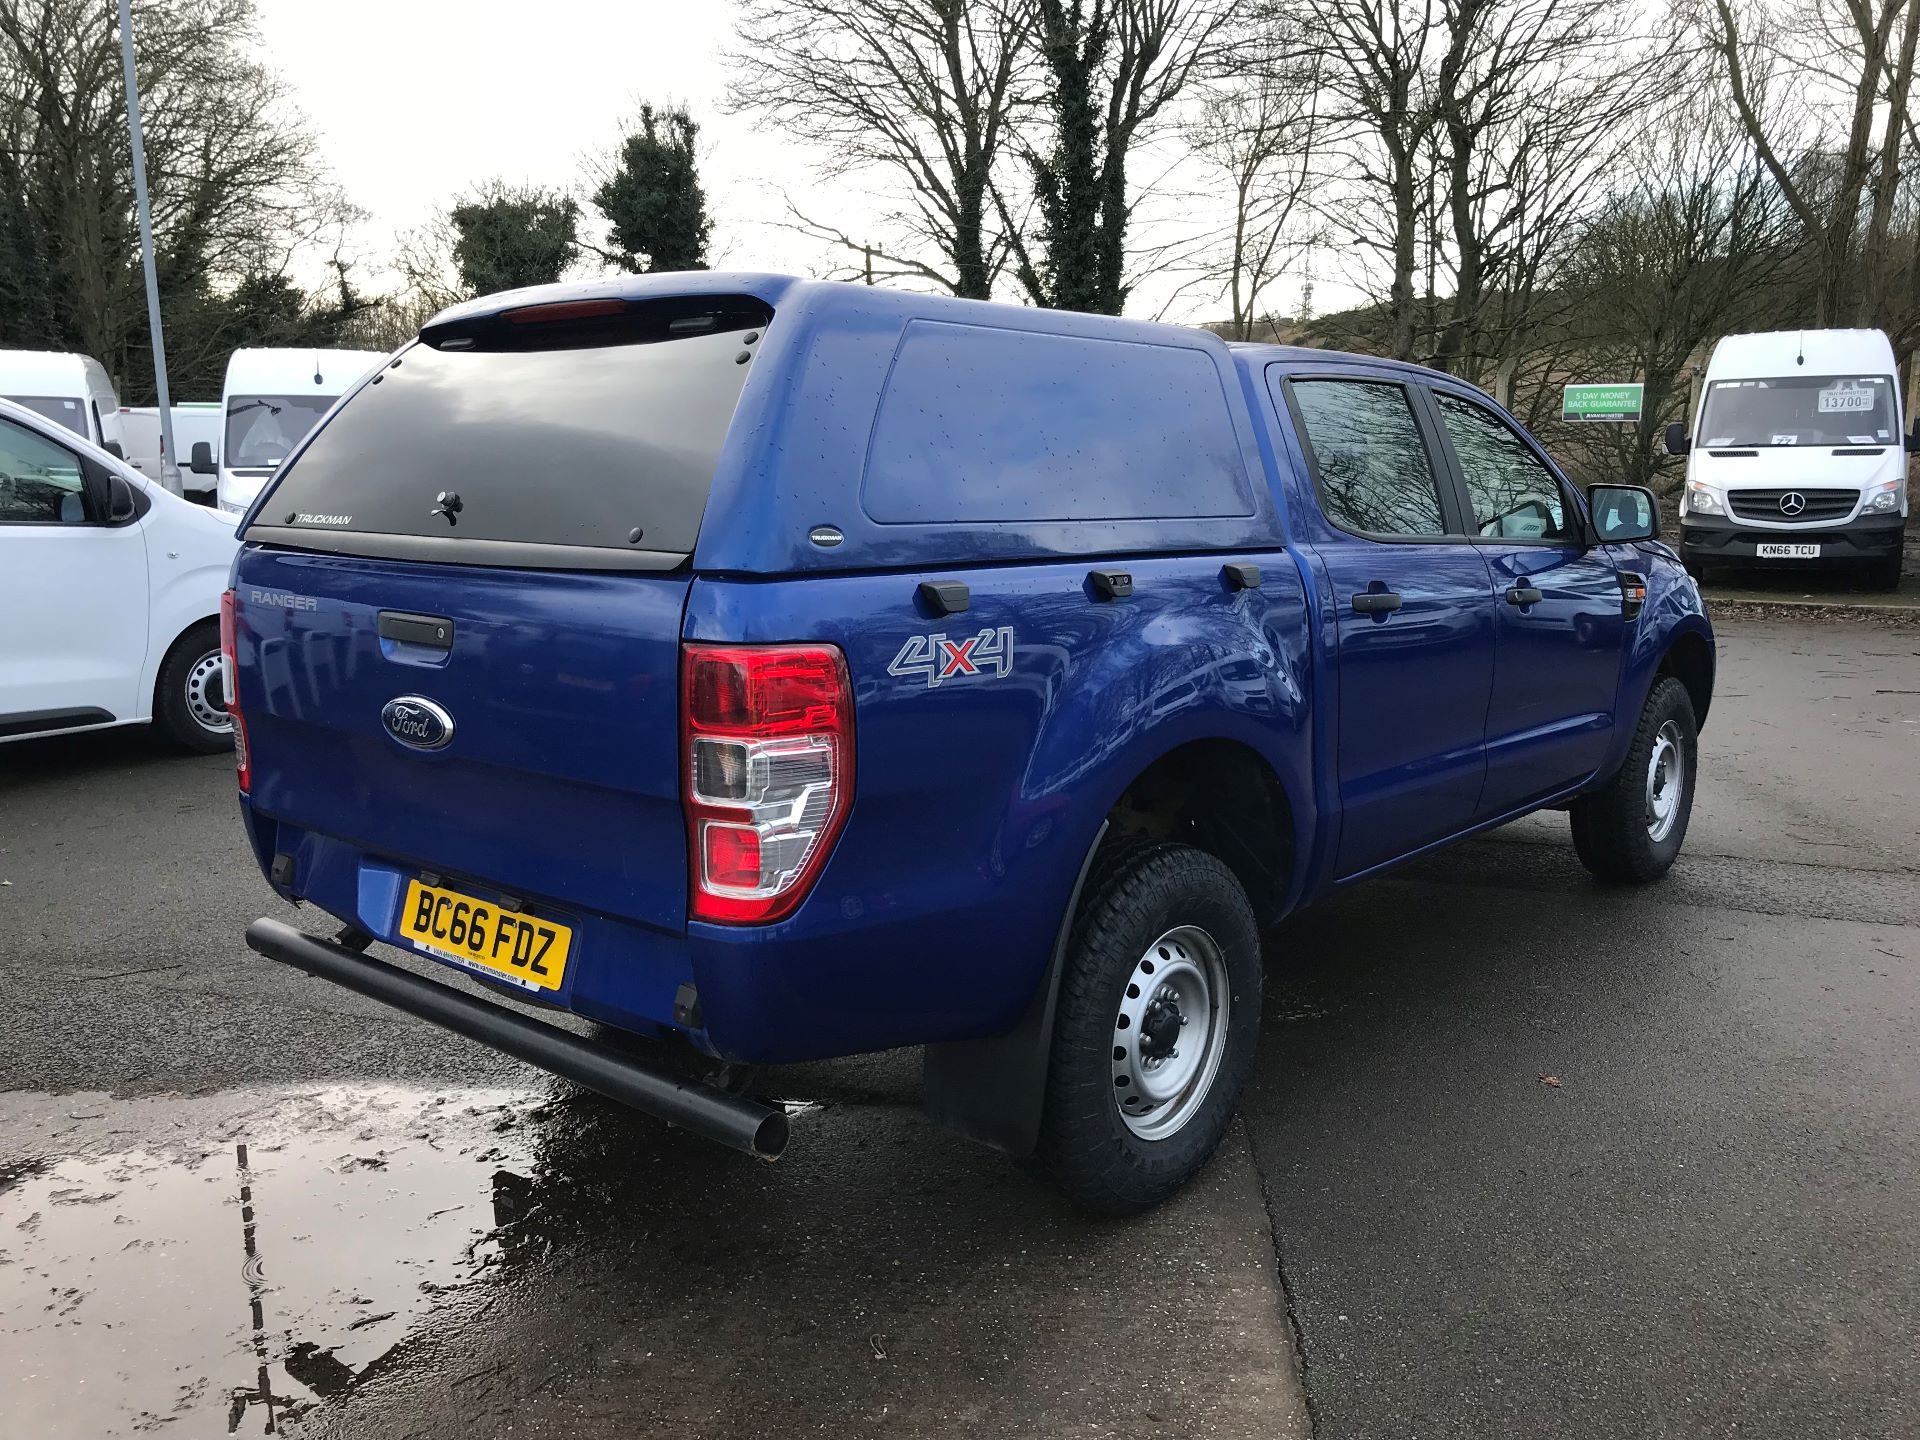 2016 Ford Ranger Pick Up Double Cab Xl 2.2 Tdci 160Ps (BC66FDZ) Image 4